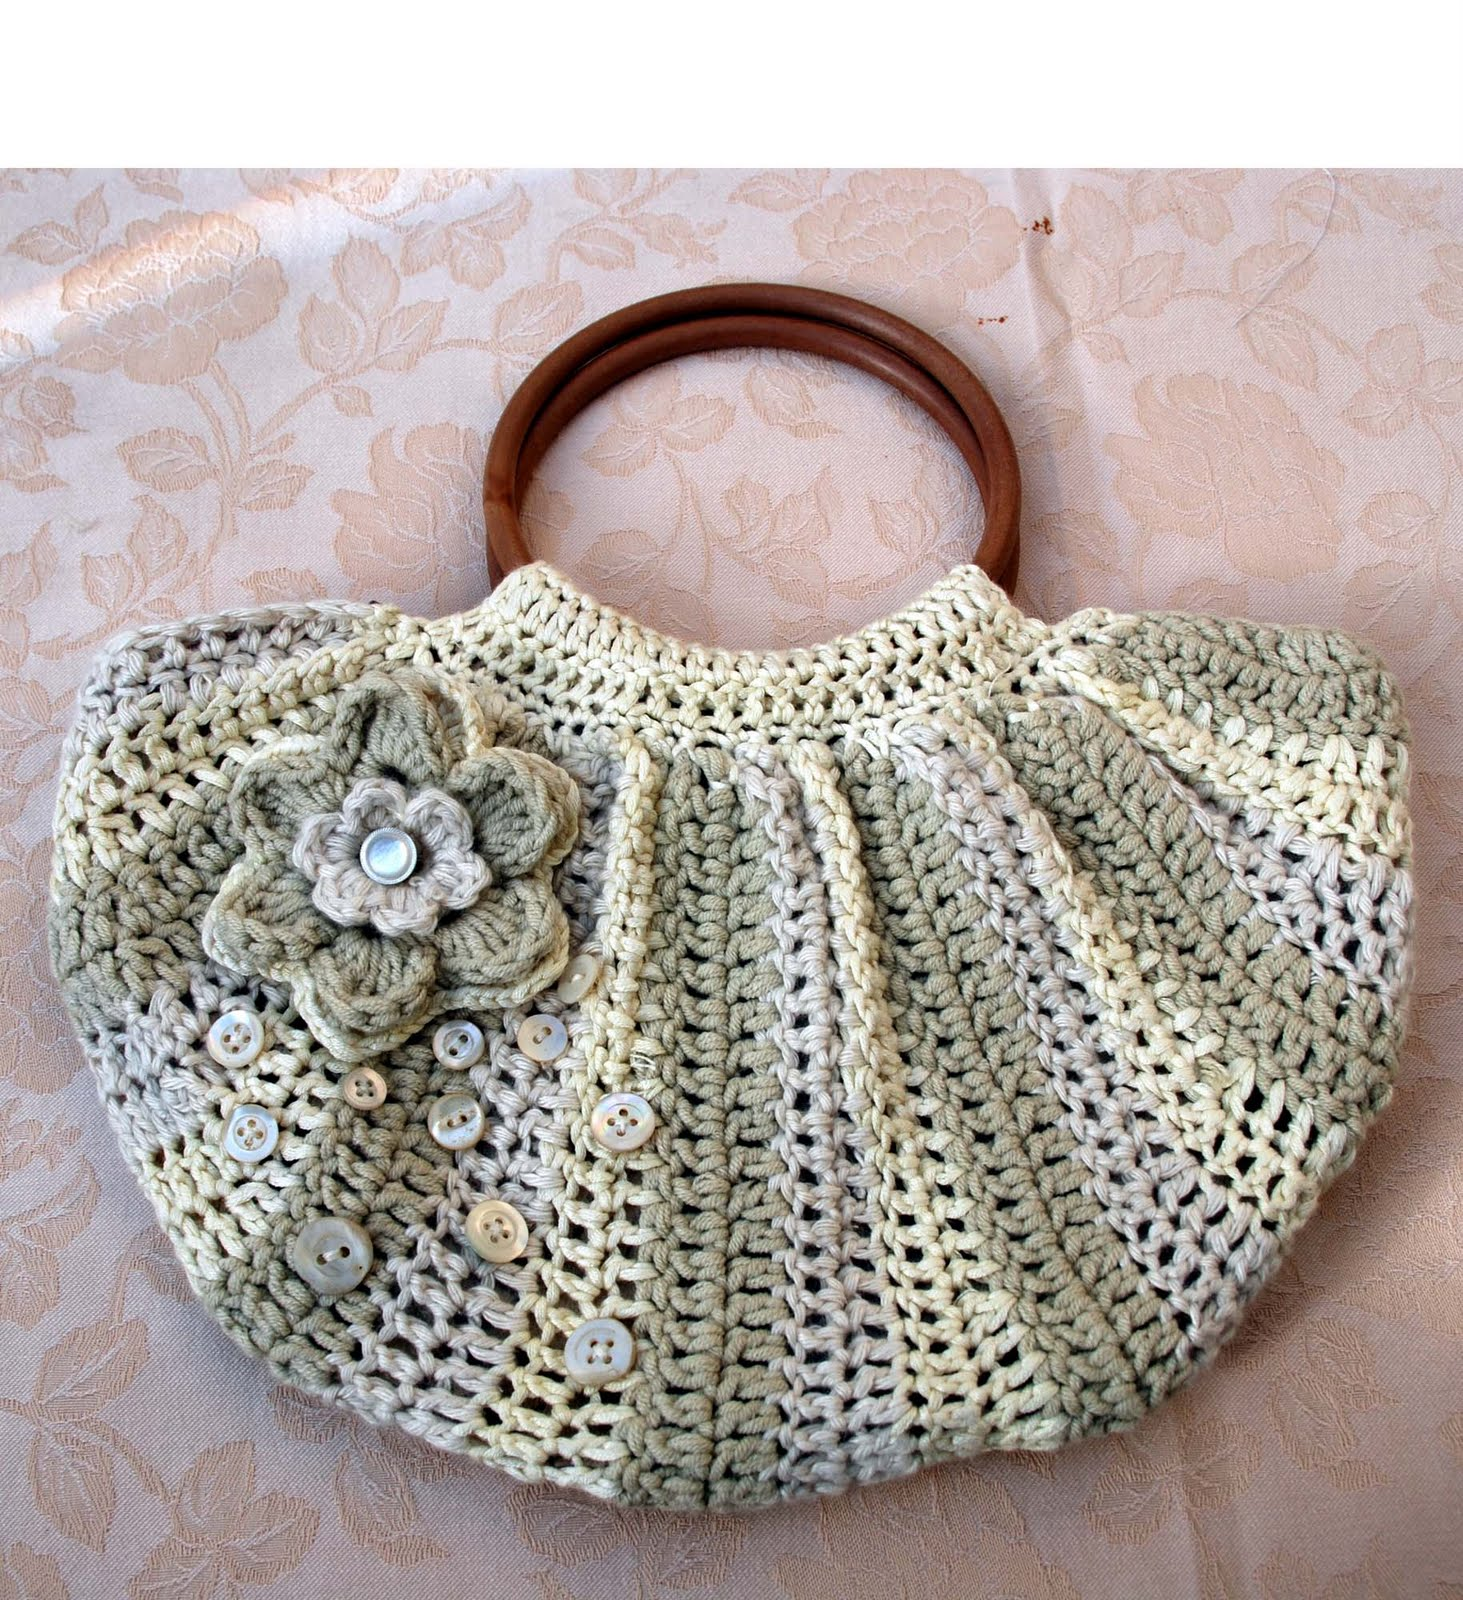 Free Crochet Handbag Patterns : Knitting Patterns Free: crochet bag